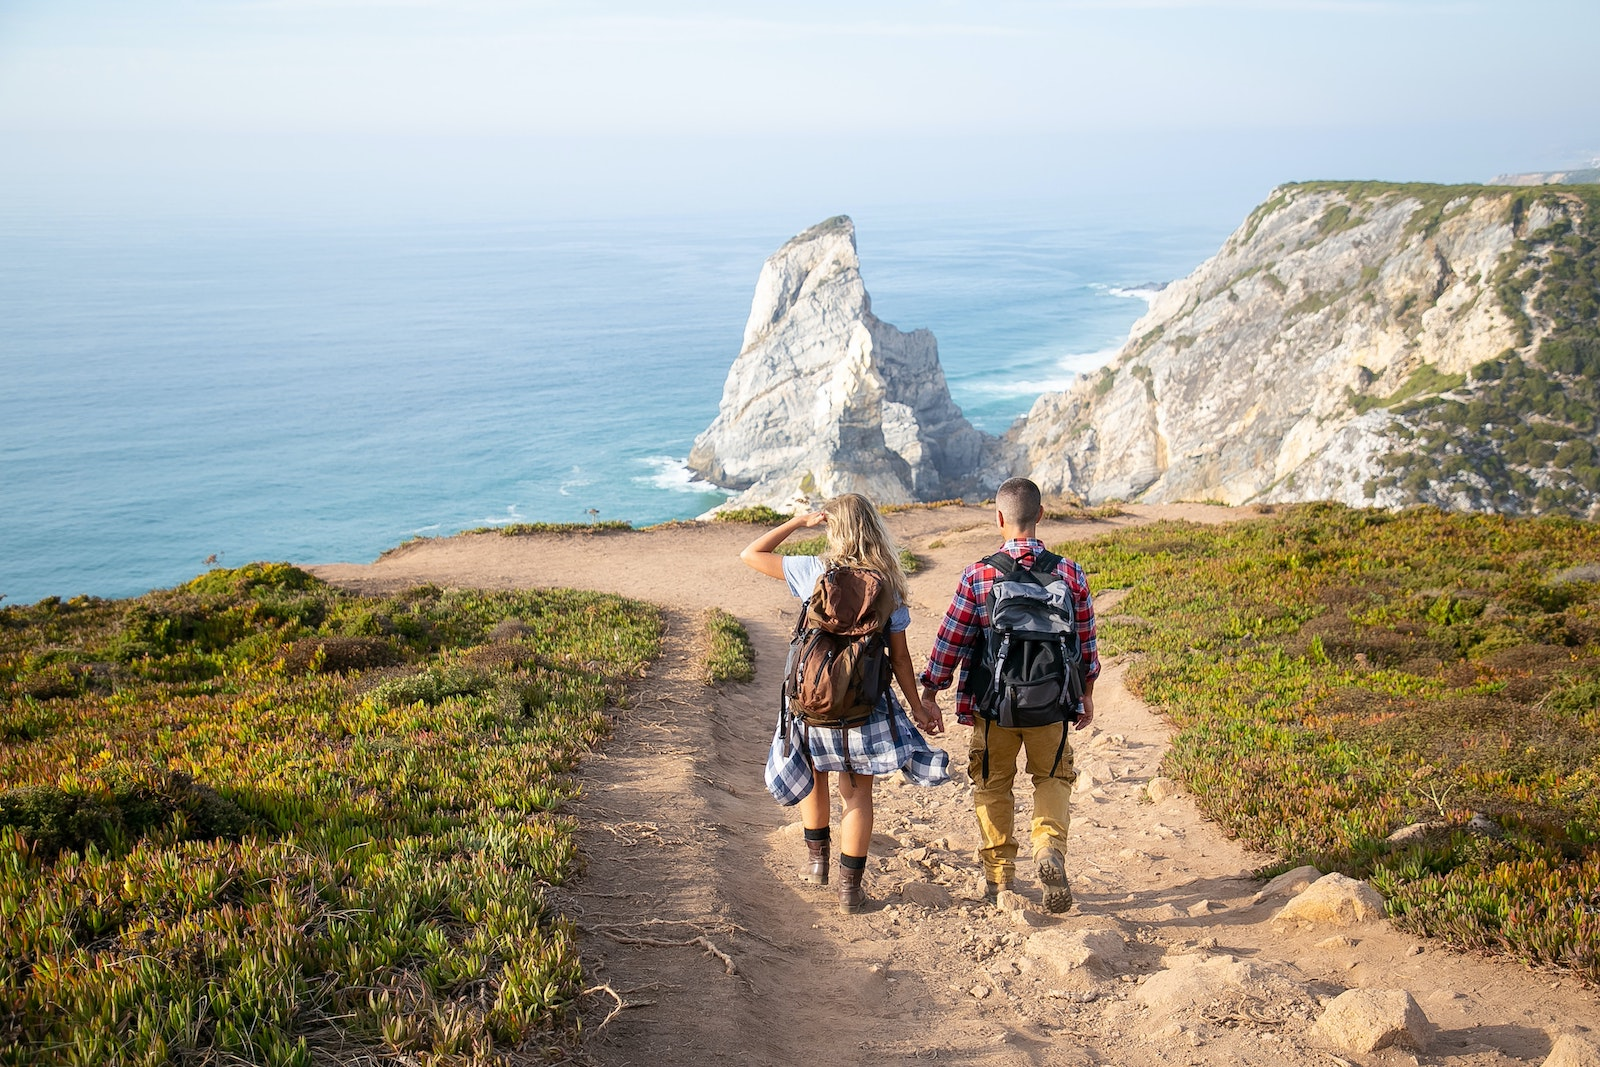 Couple hiking on cliff looking at ocean